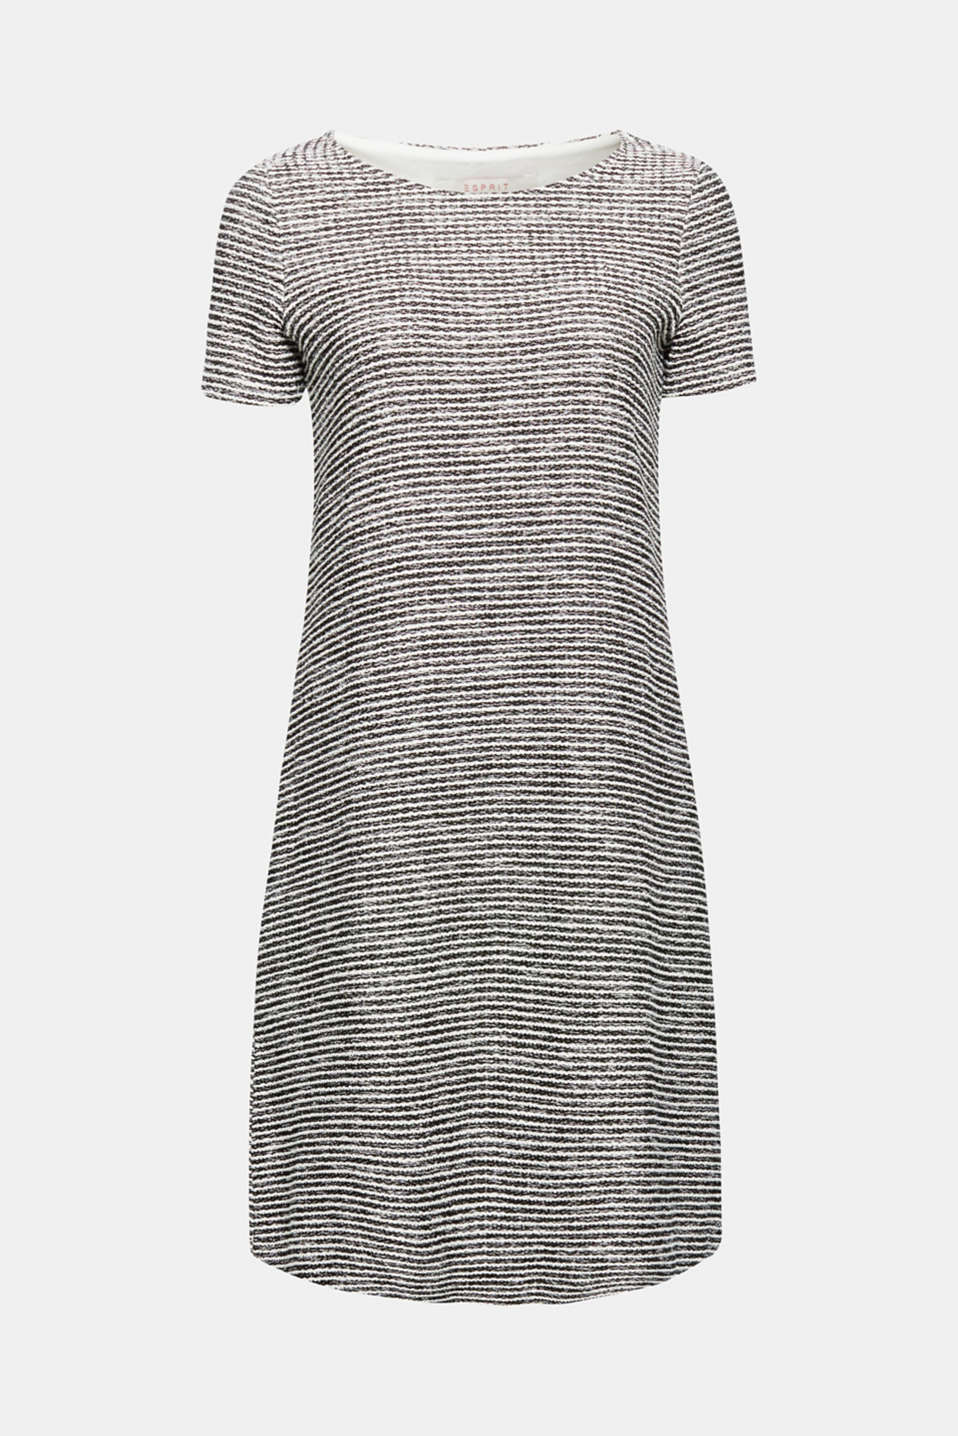 Textured stripes in a summery, bouclé look give this dress with a flared skirt a charming look!